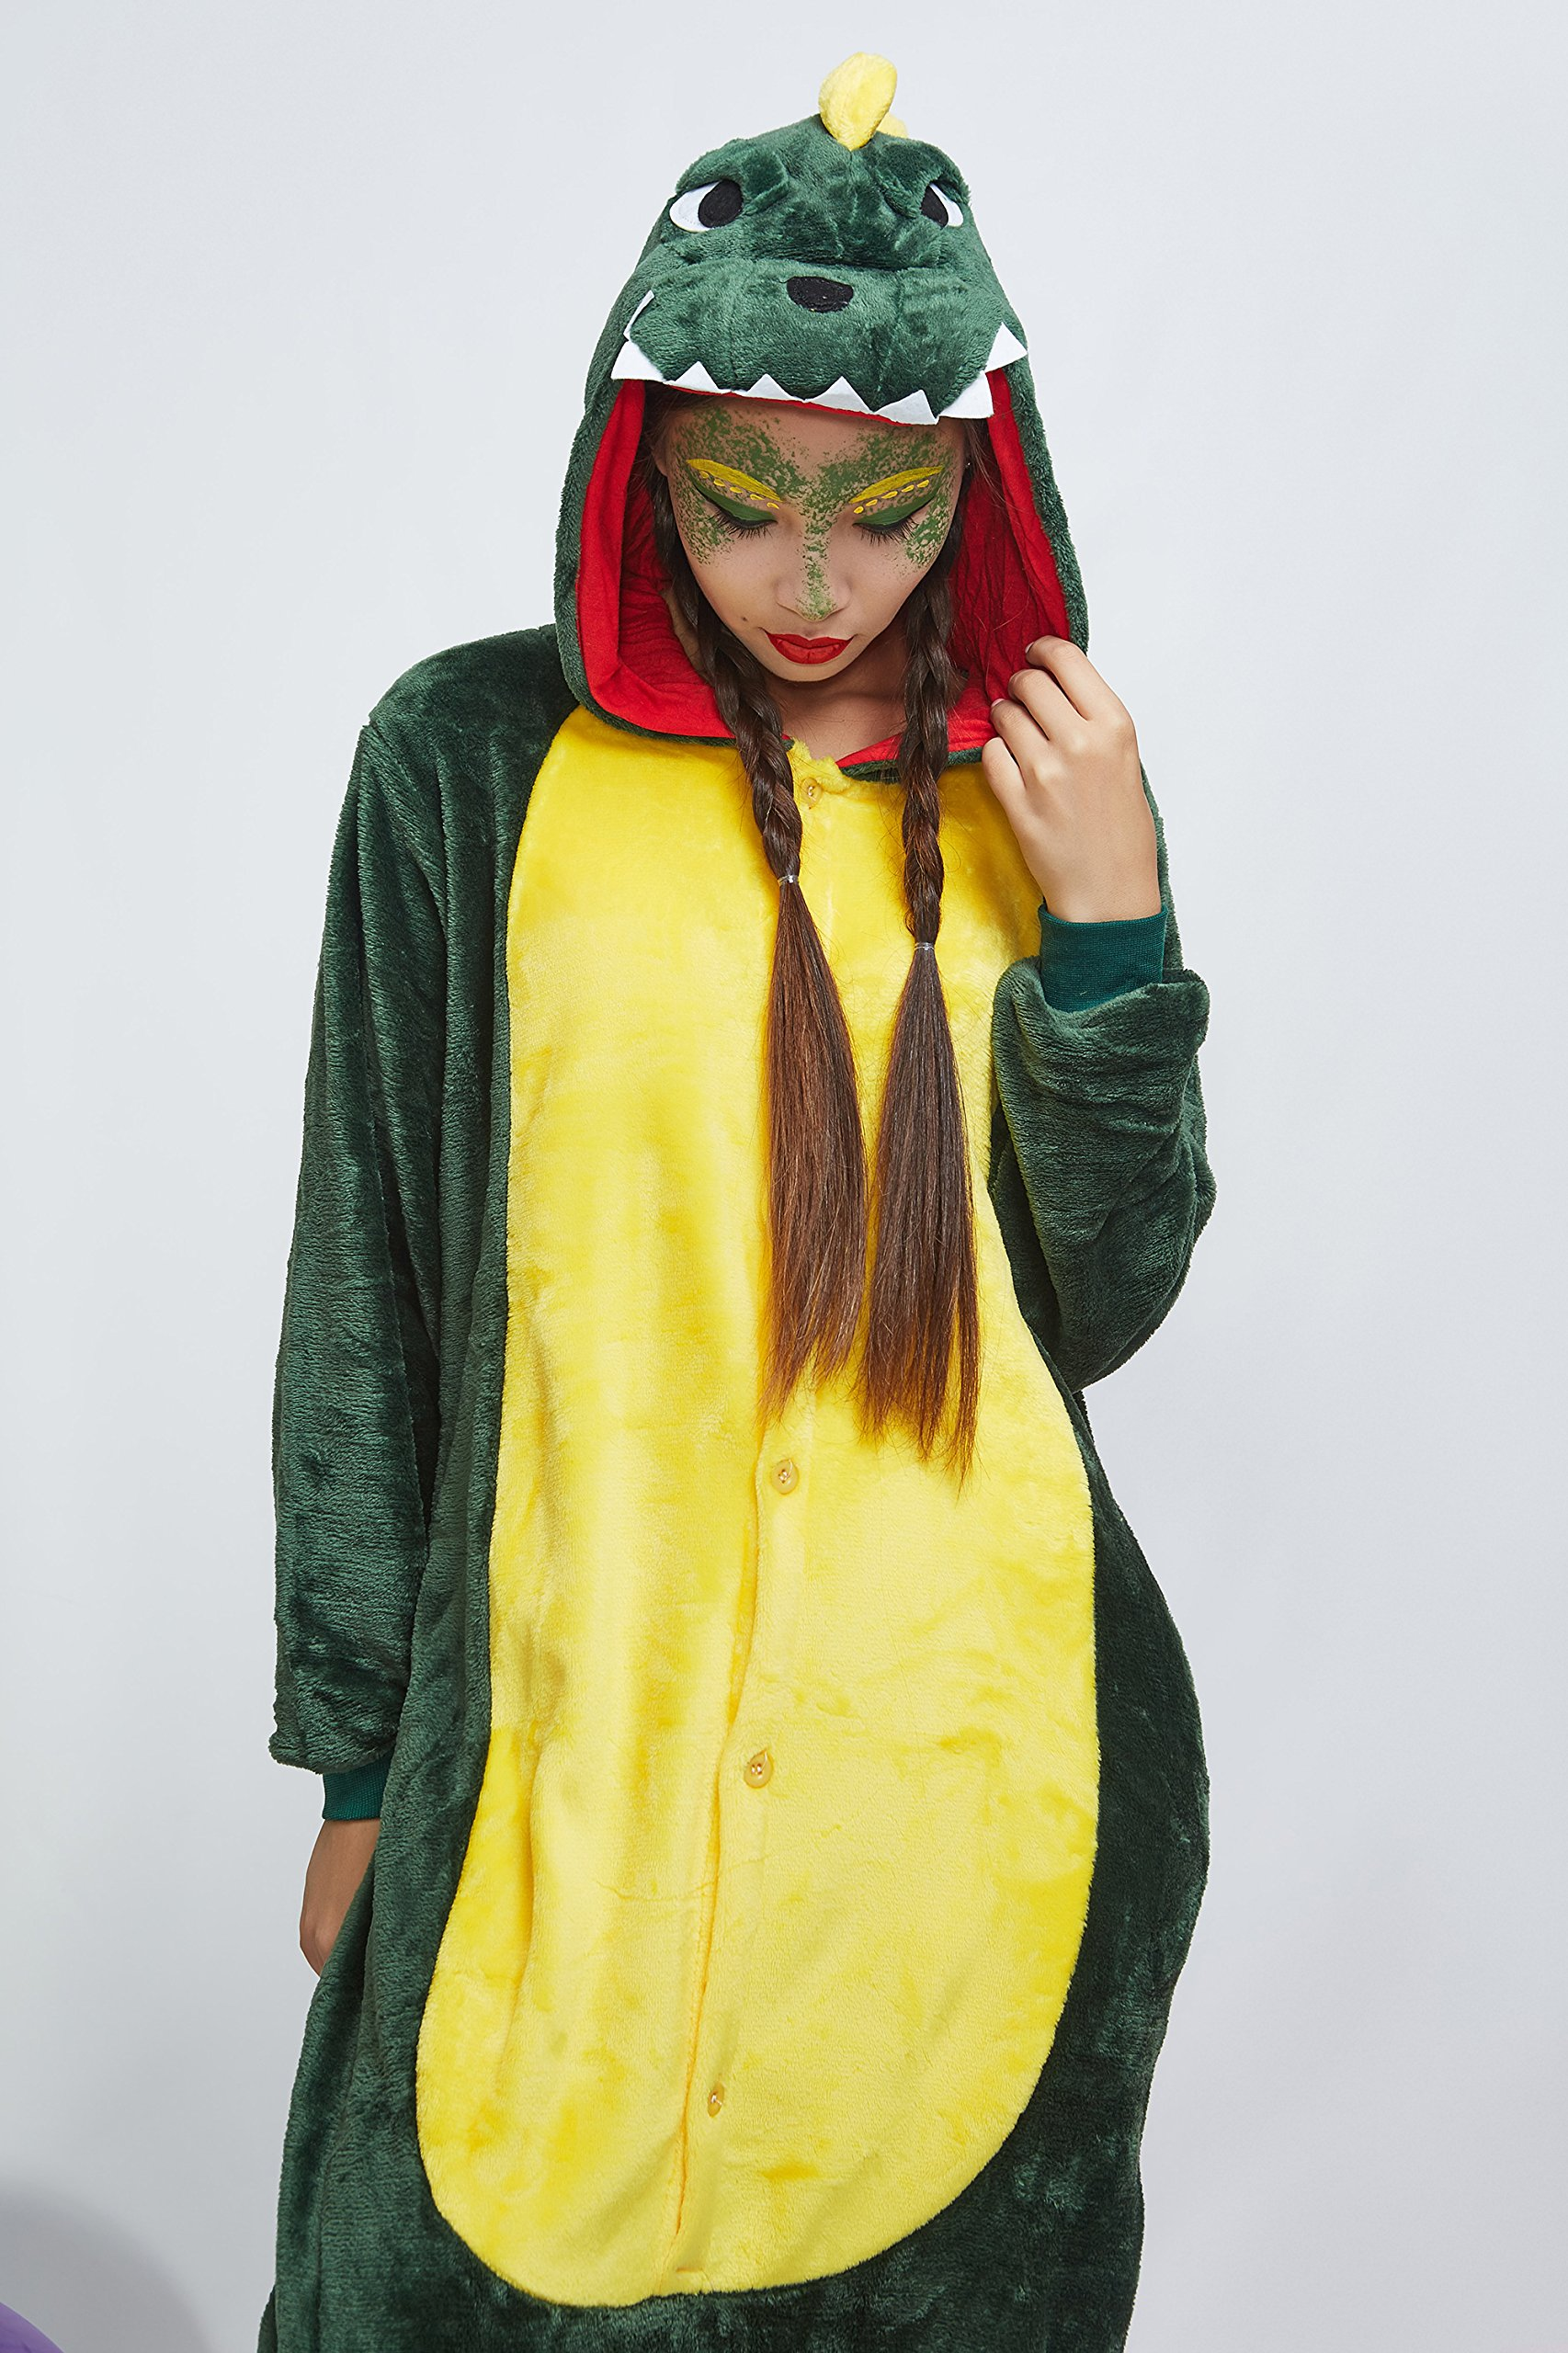 Adult Dragon Kigurumi Animal Onesie Pajamas Plush Onsie One Piece Cosplay Costume (Small, Green) by Nothing But Love (Image #6)